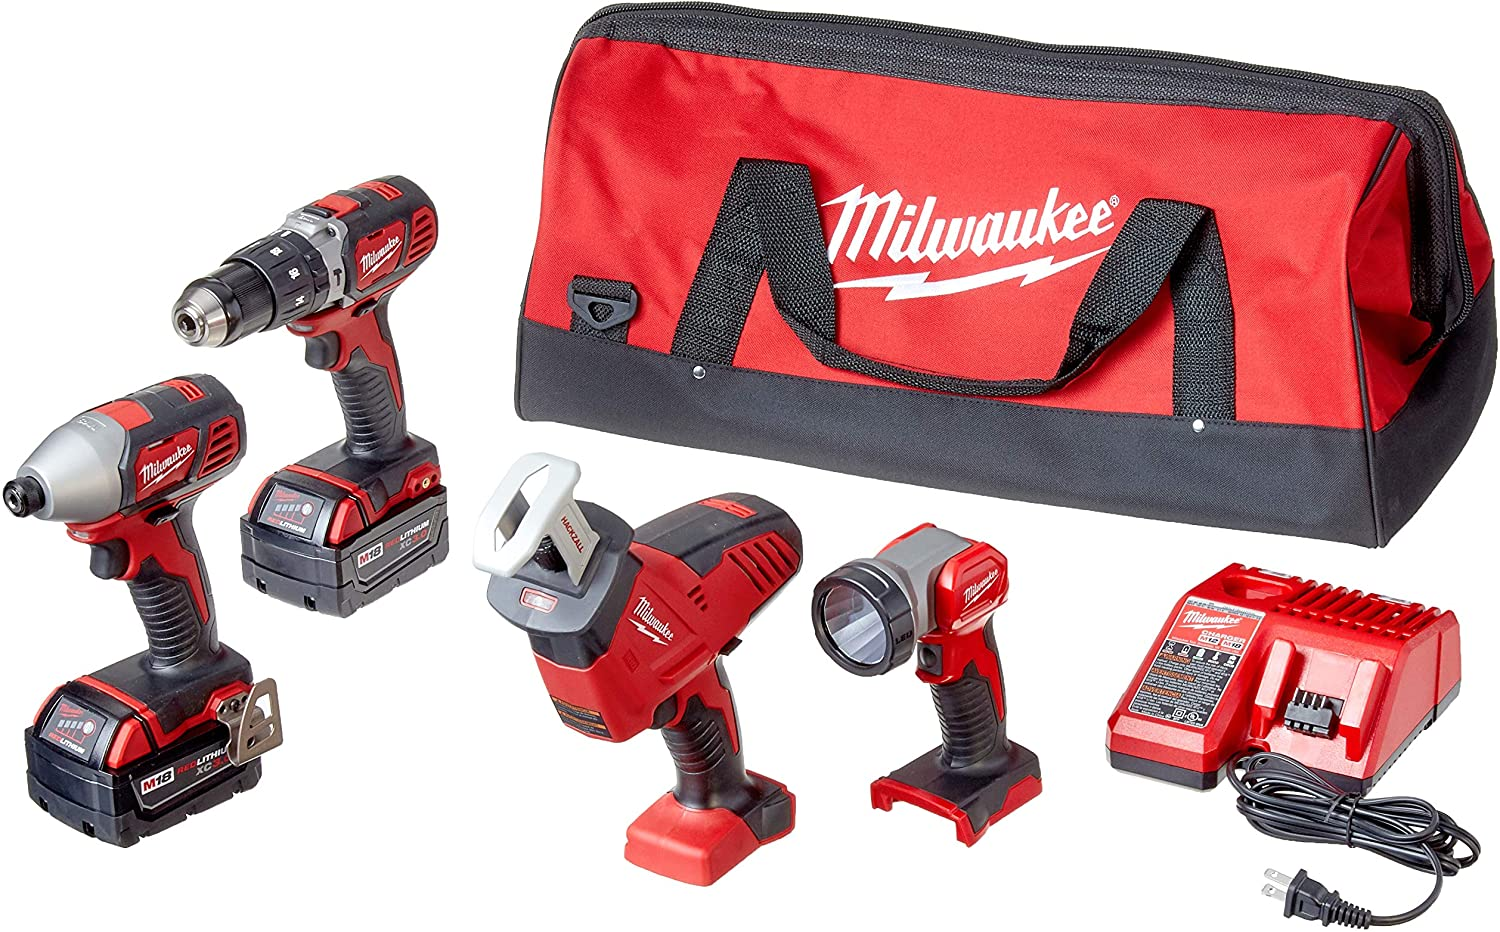 MILWAUKEE'S 2695-24 M18 18V Cordless Power Tool Combo Kit with Hammer Drill, Impact Driver, Reciprocating Saw, and Work Light (2